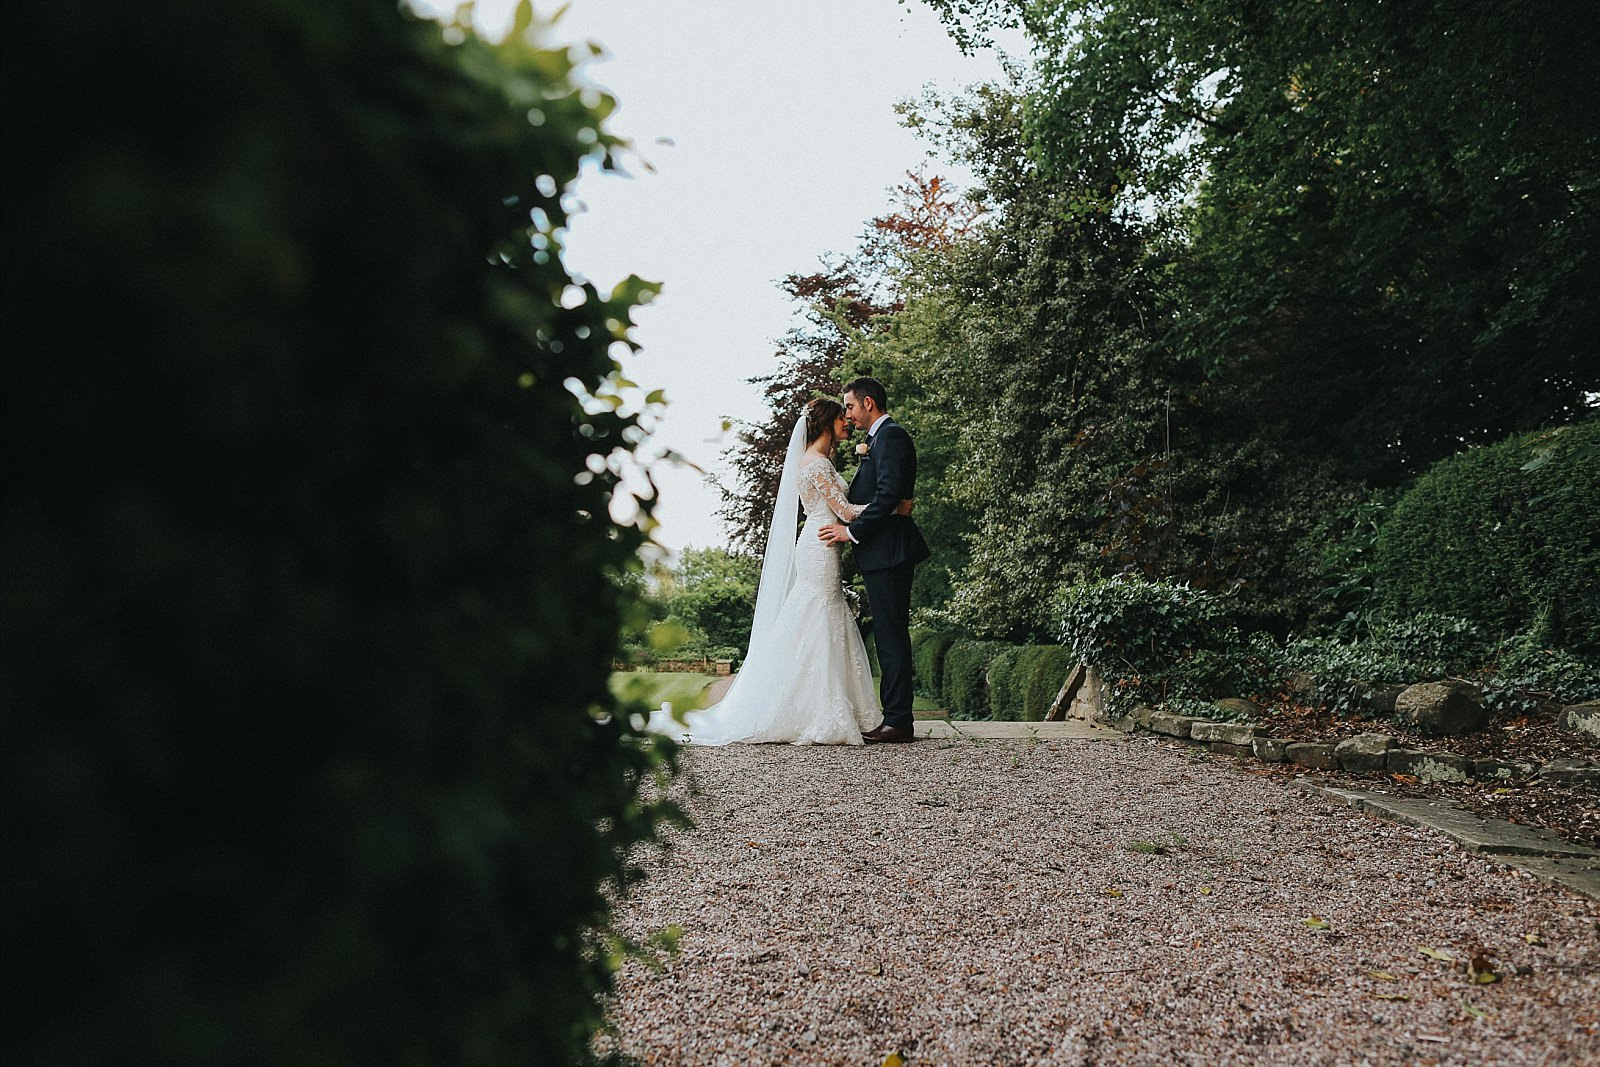 eaves hall wedding photographer uses the stunning grounds